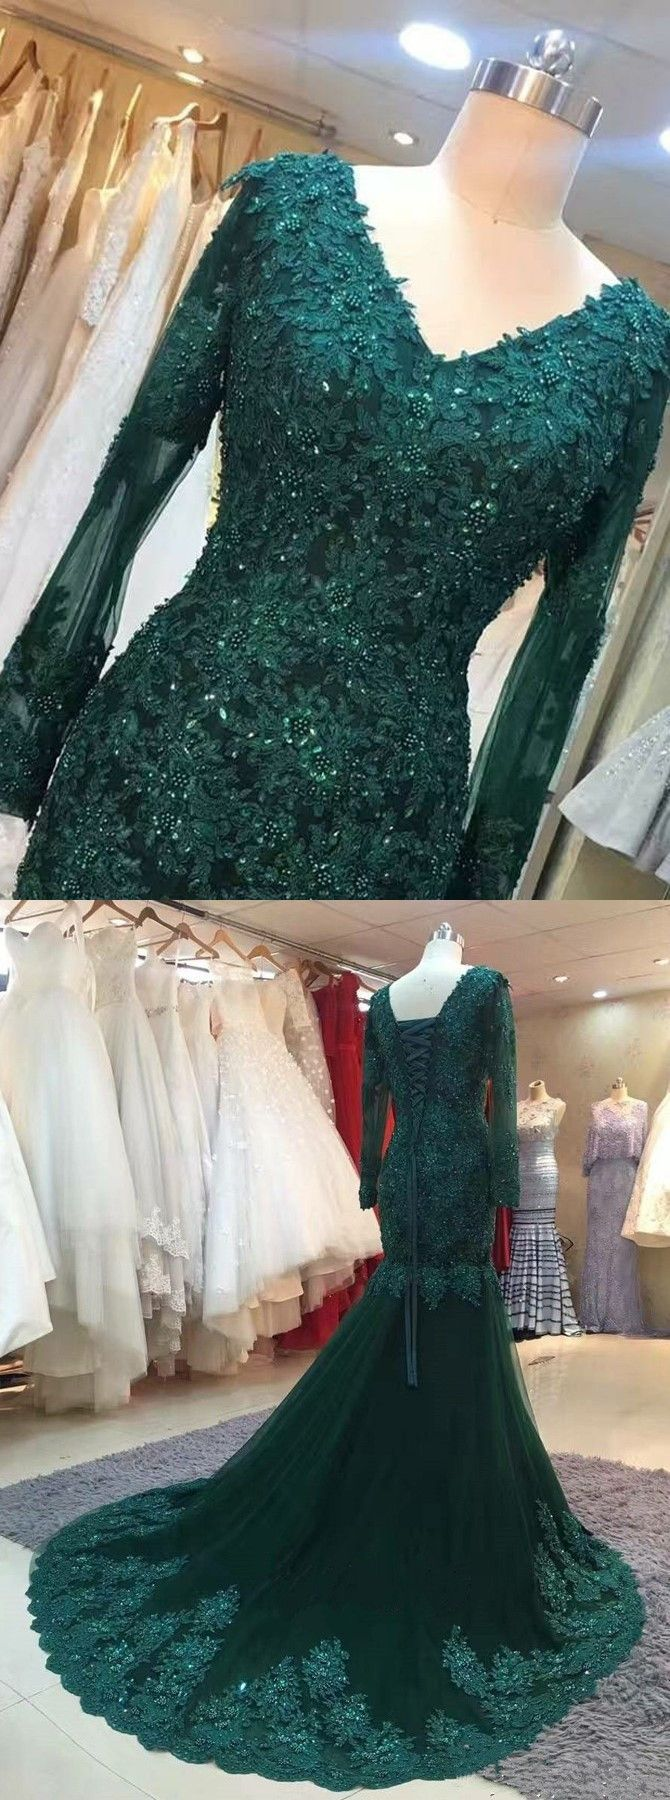 Mermaid vneck long sleeves green tulle prom dress with appliques